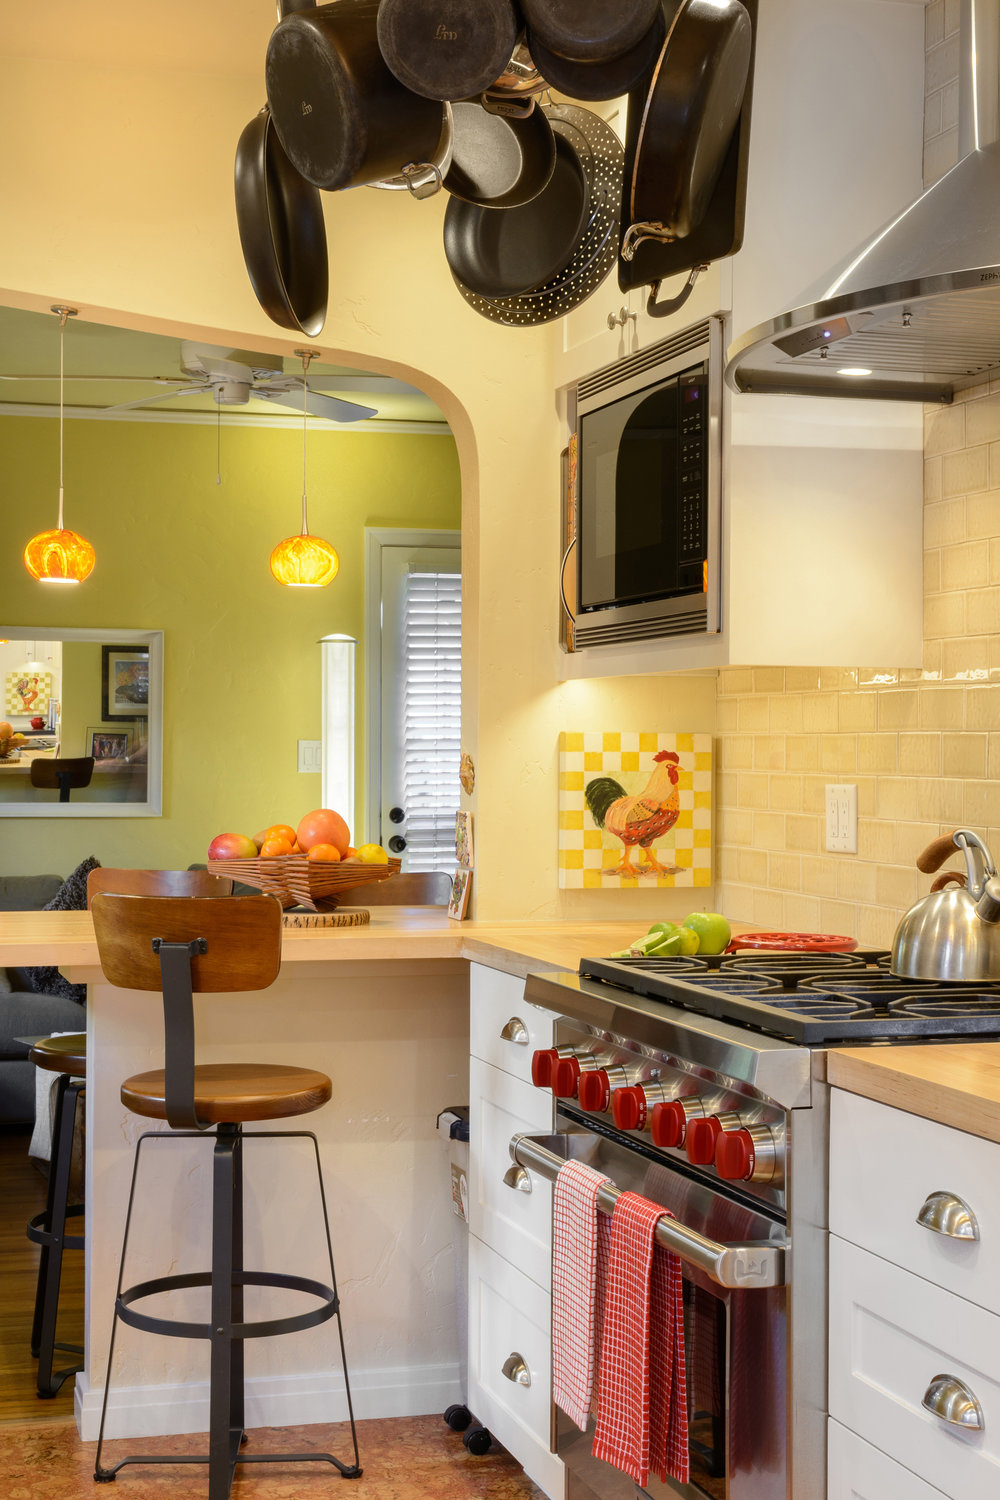 The cooking area of this old world charm kitchen offers a luxurious gas range and hood, a hanging pot rack, a built-in microwave, and white cabinetry with a wood countertop and barstool